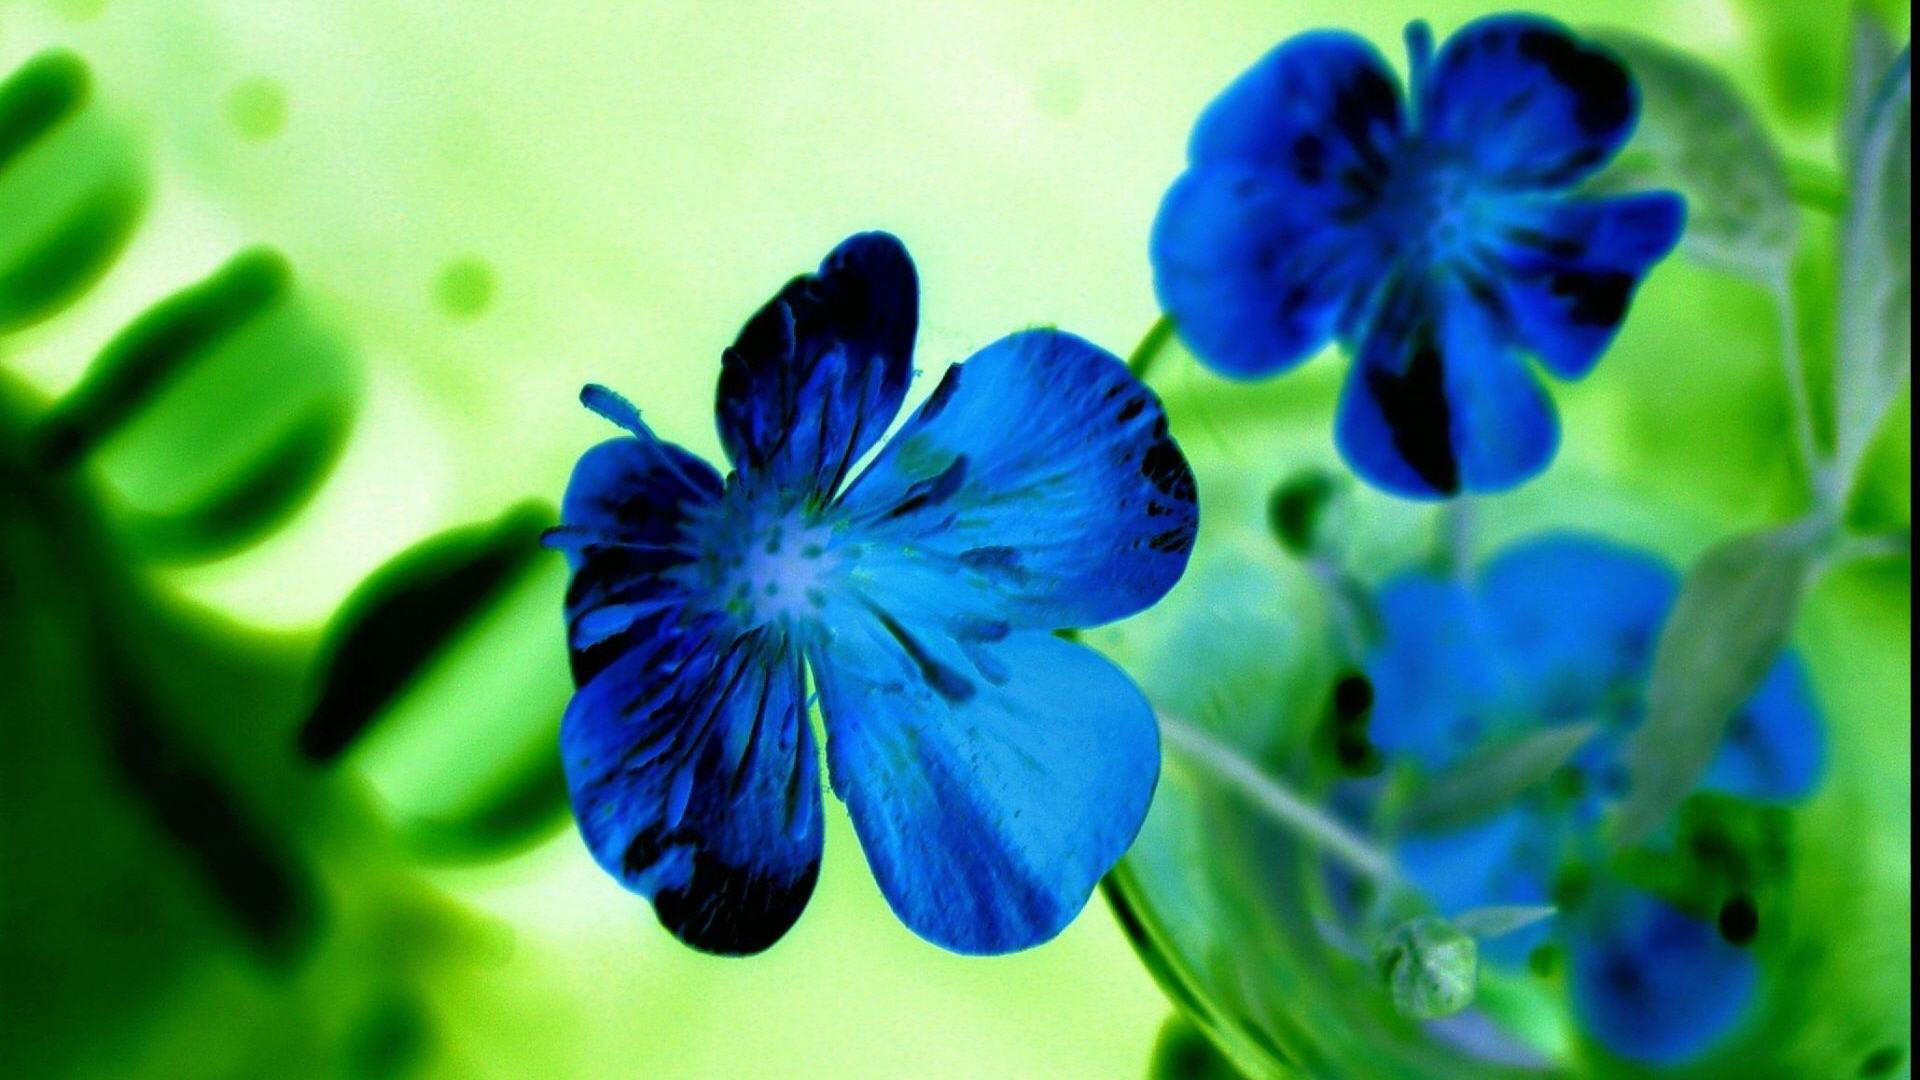 Hd flower wallpaper wallpapersafari beautiful blue flowers hd desktop wallpaper hd desktop wallpaper 1920x1080 izmirmasajfo